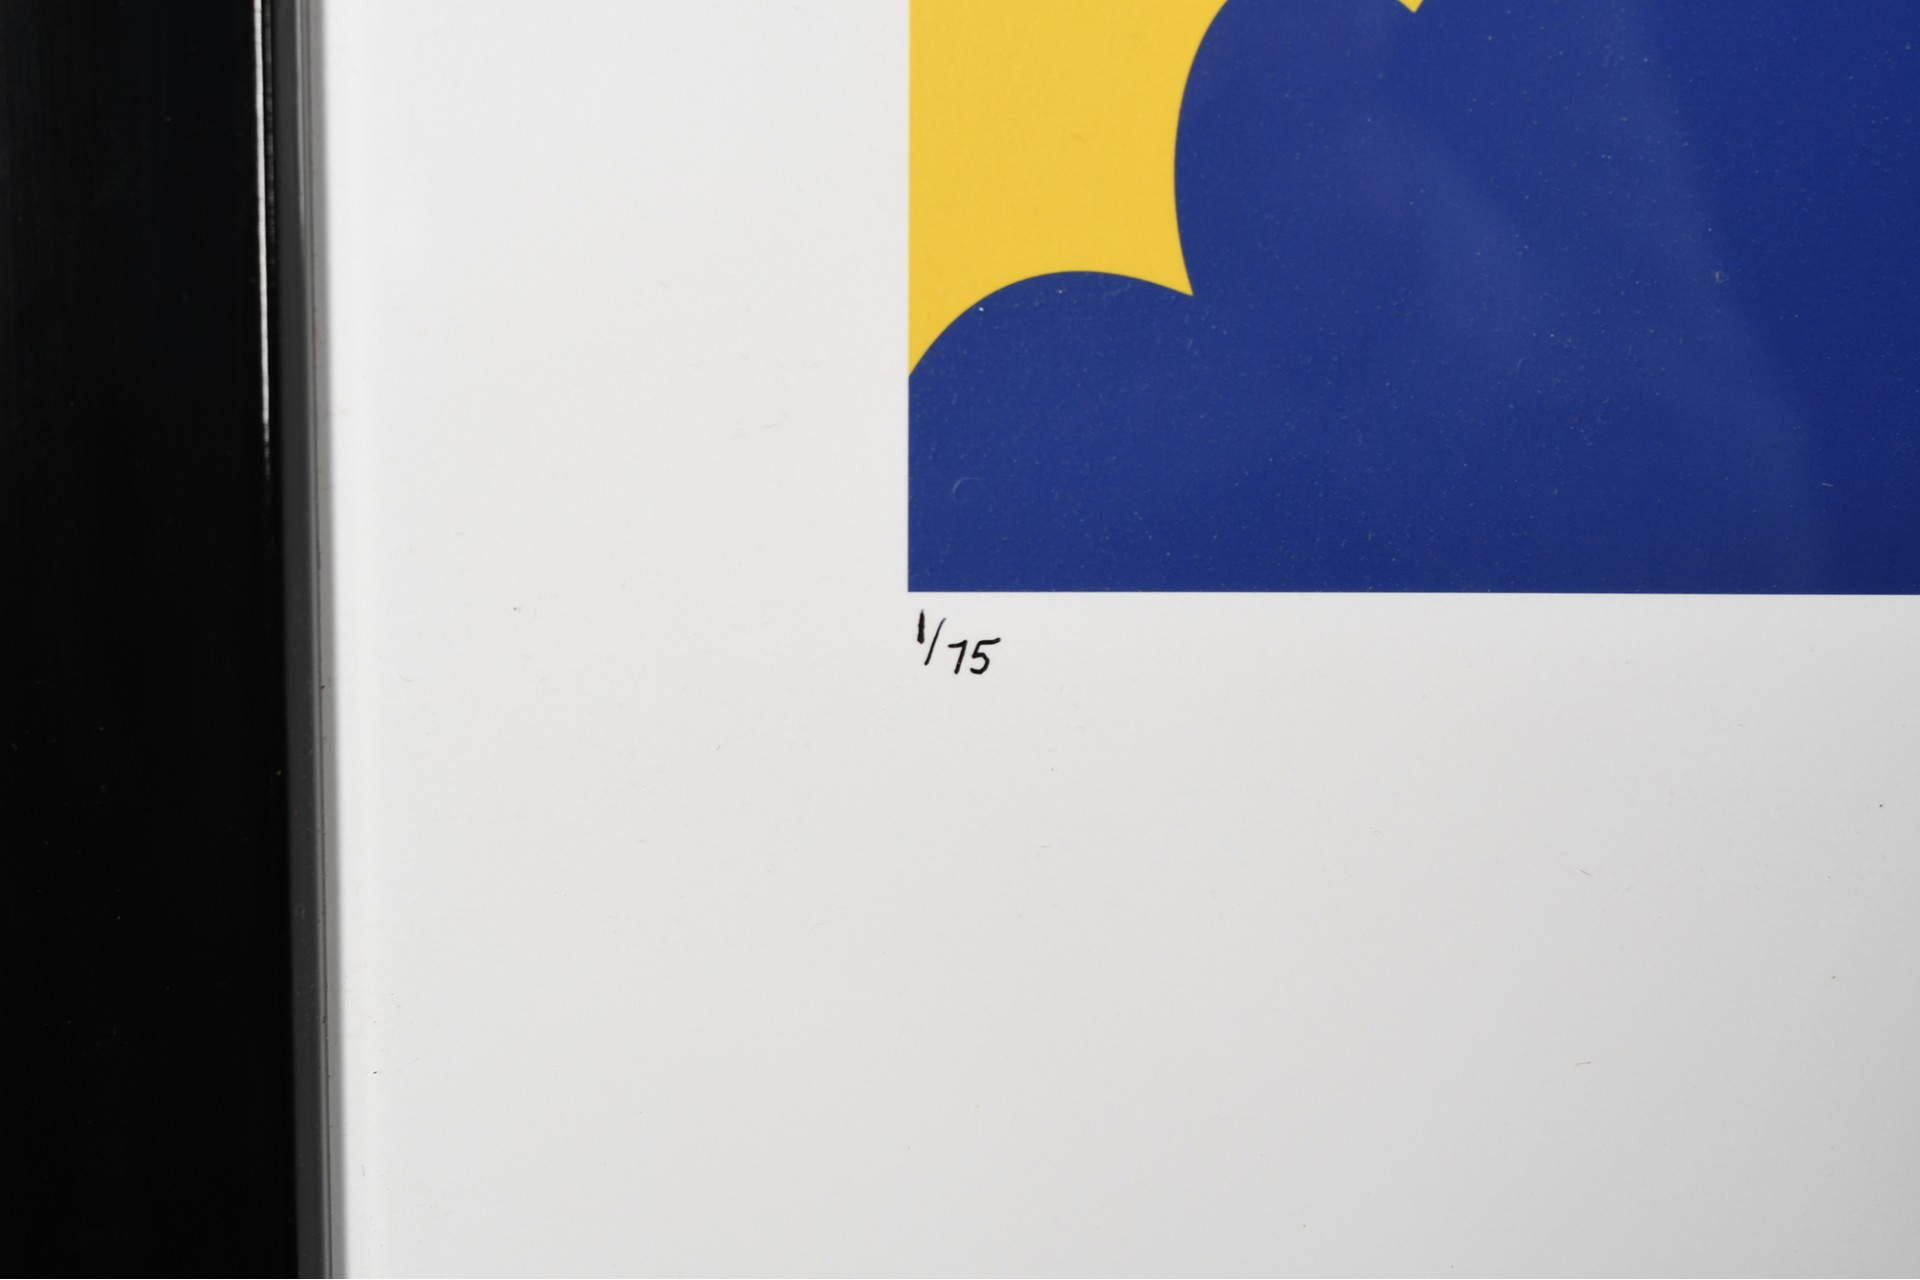 Stunning Limited Edition by Kevin Kelly No.1 in the Edition